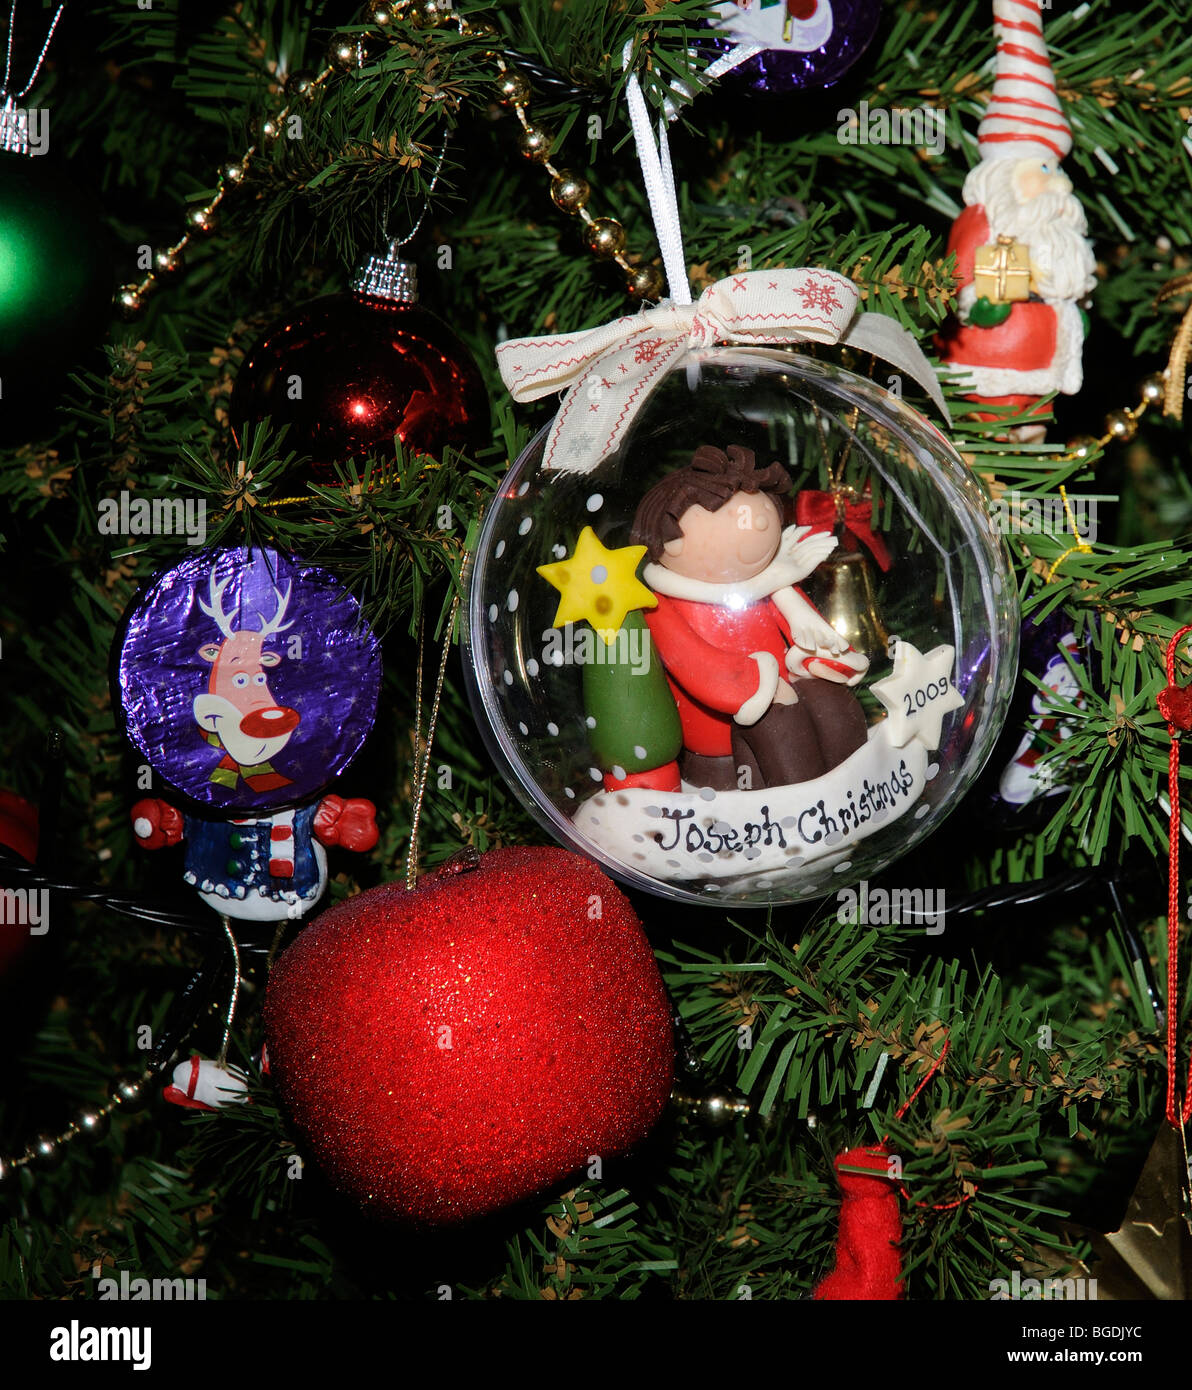 A personalised Christmas bauble containing a handcrafted figure of ...